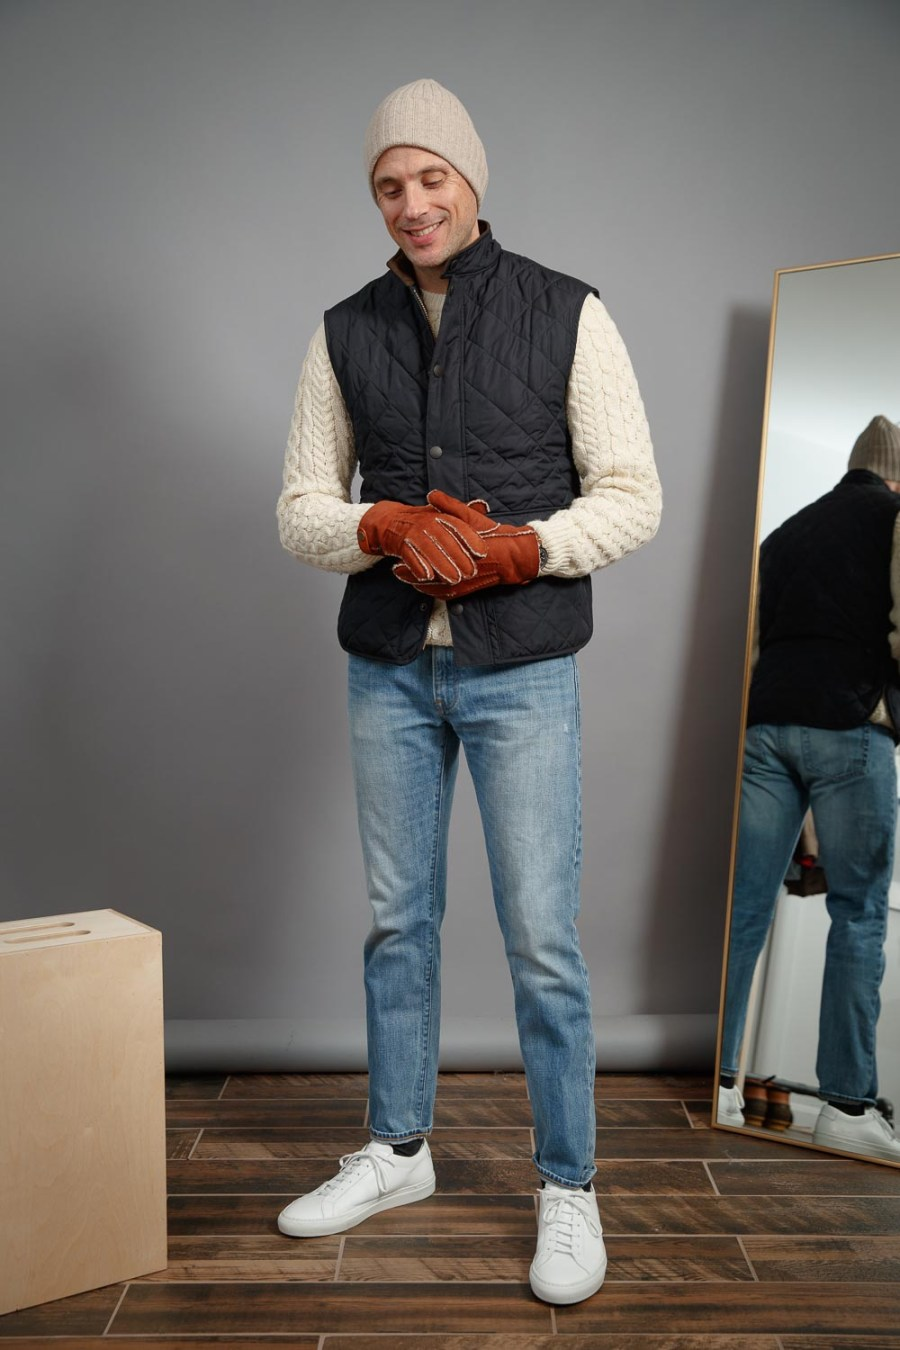 Light-wash-jeans-with-common-projects-sneakers-hilts-willard-gloves-barbour-vest-best-casual-winter-style-ideas